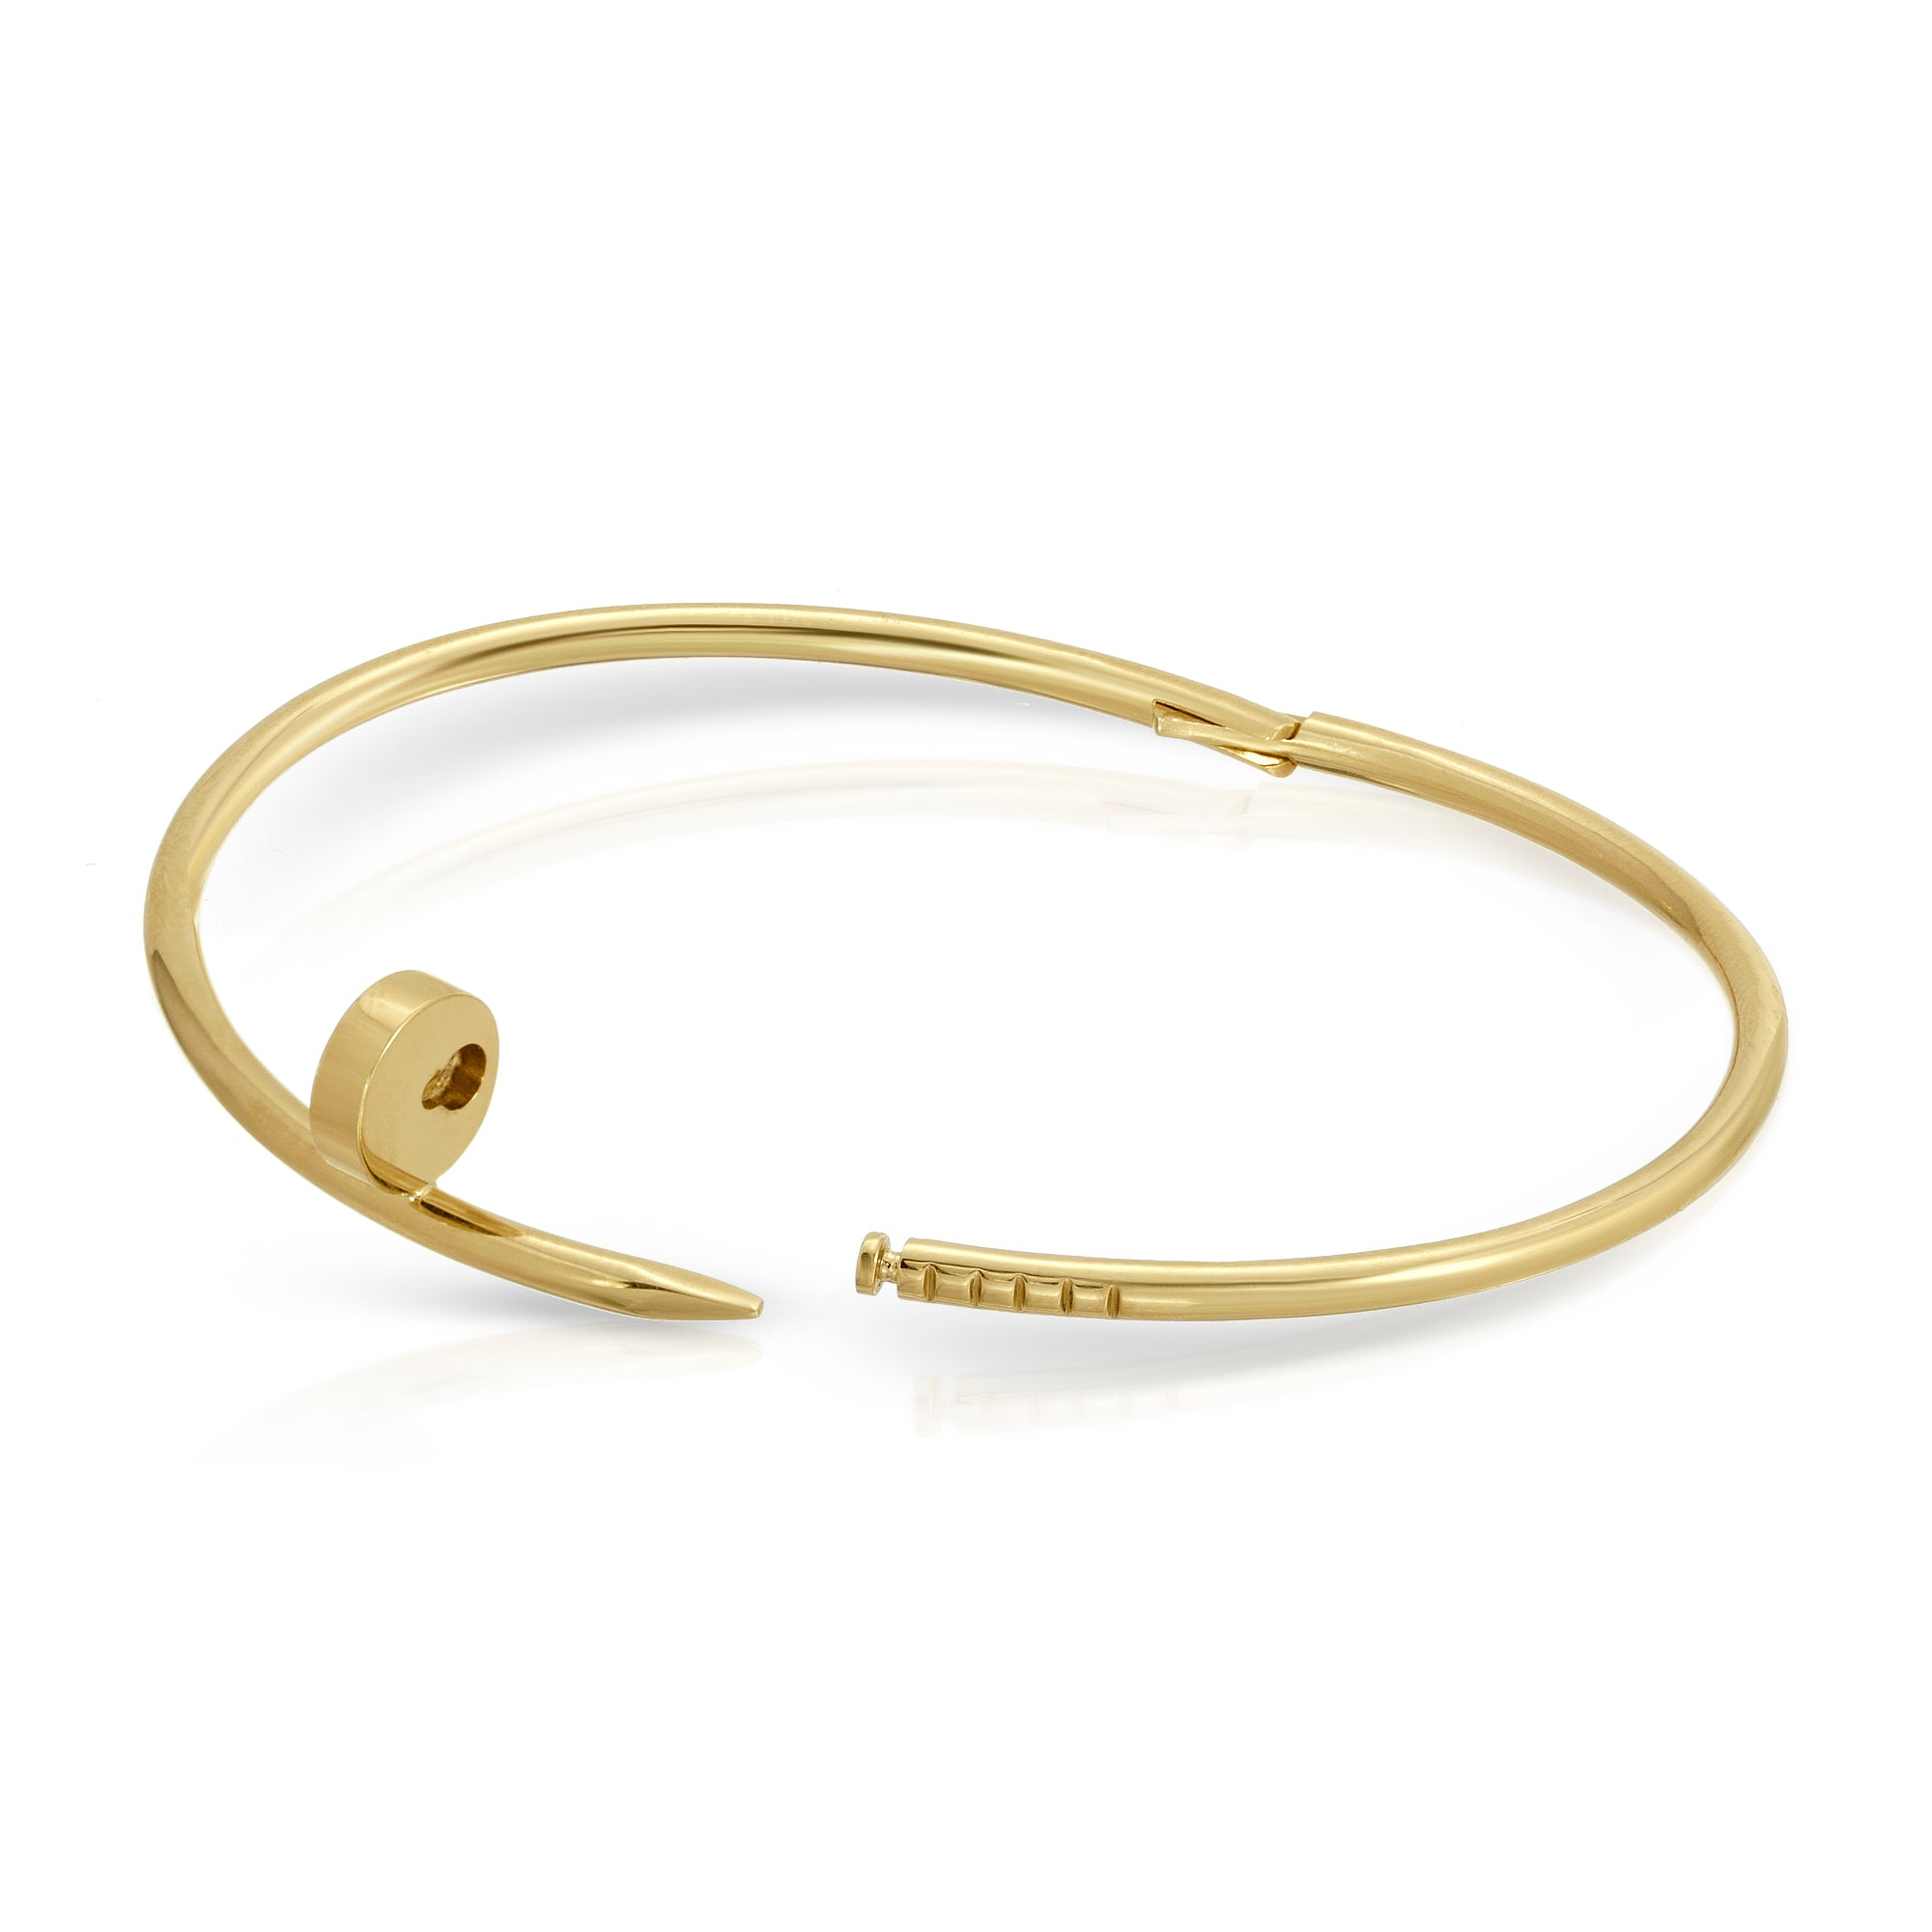 The W Brothers Nail Bracelet crafted excellently in Solid 18K Yellow Gold available in Solid 18K Yellow Gold, White Gold, & Rose Gold.  This gorgeous Cartier inspired Bracelet is elegant & modern for both men and female wear.